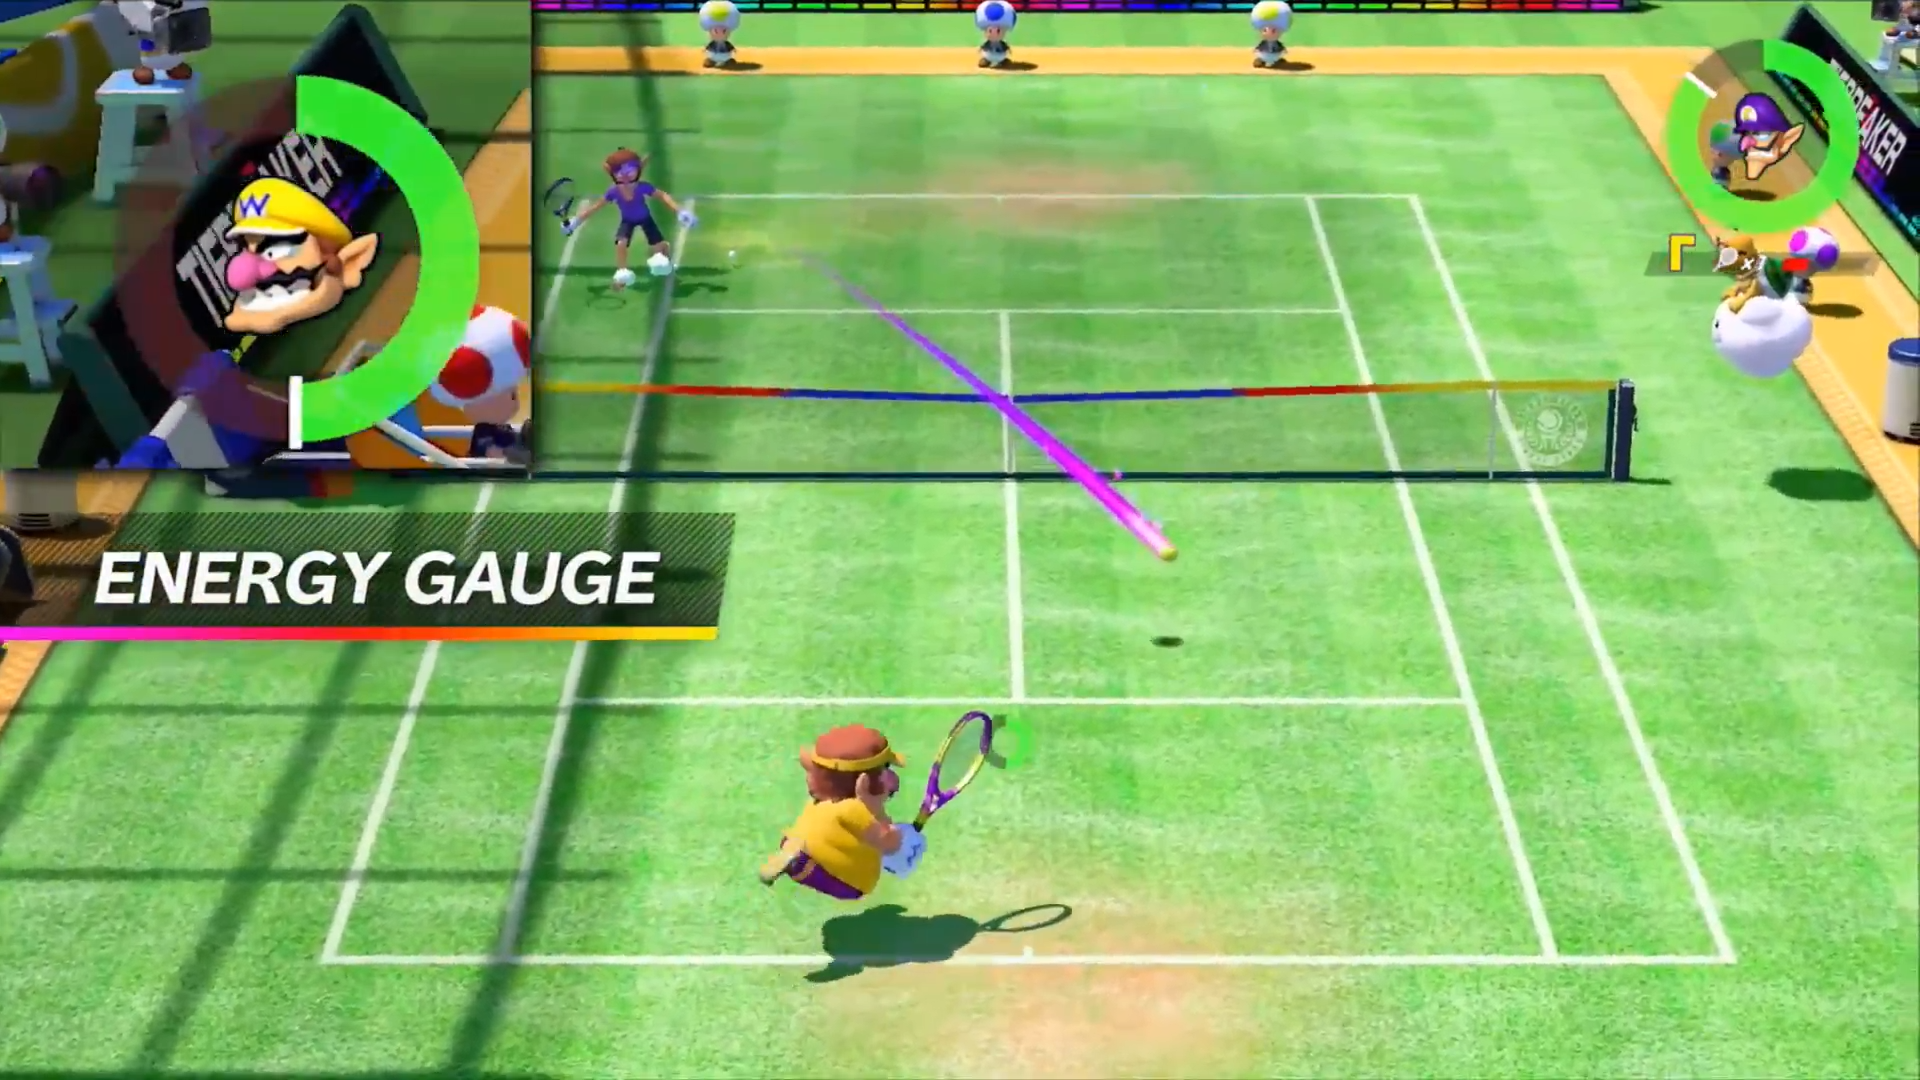 New Mario Tennis Aces gameplay trailer released